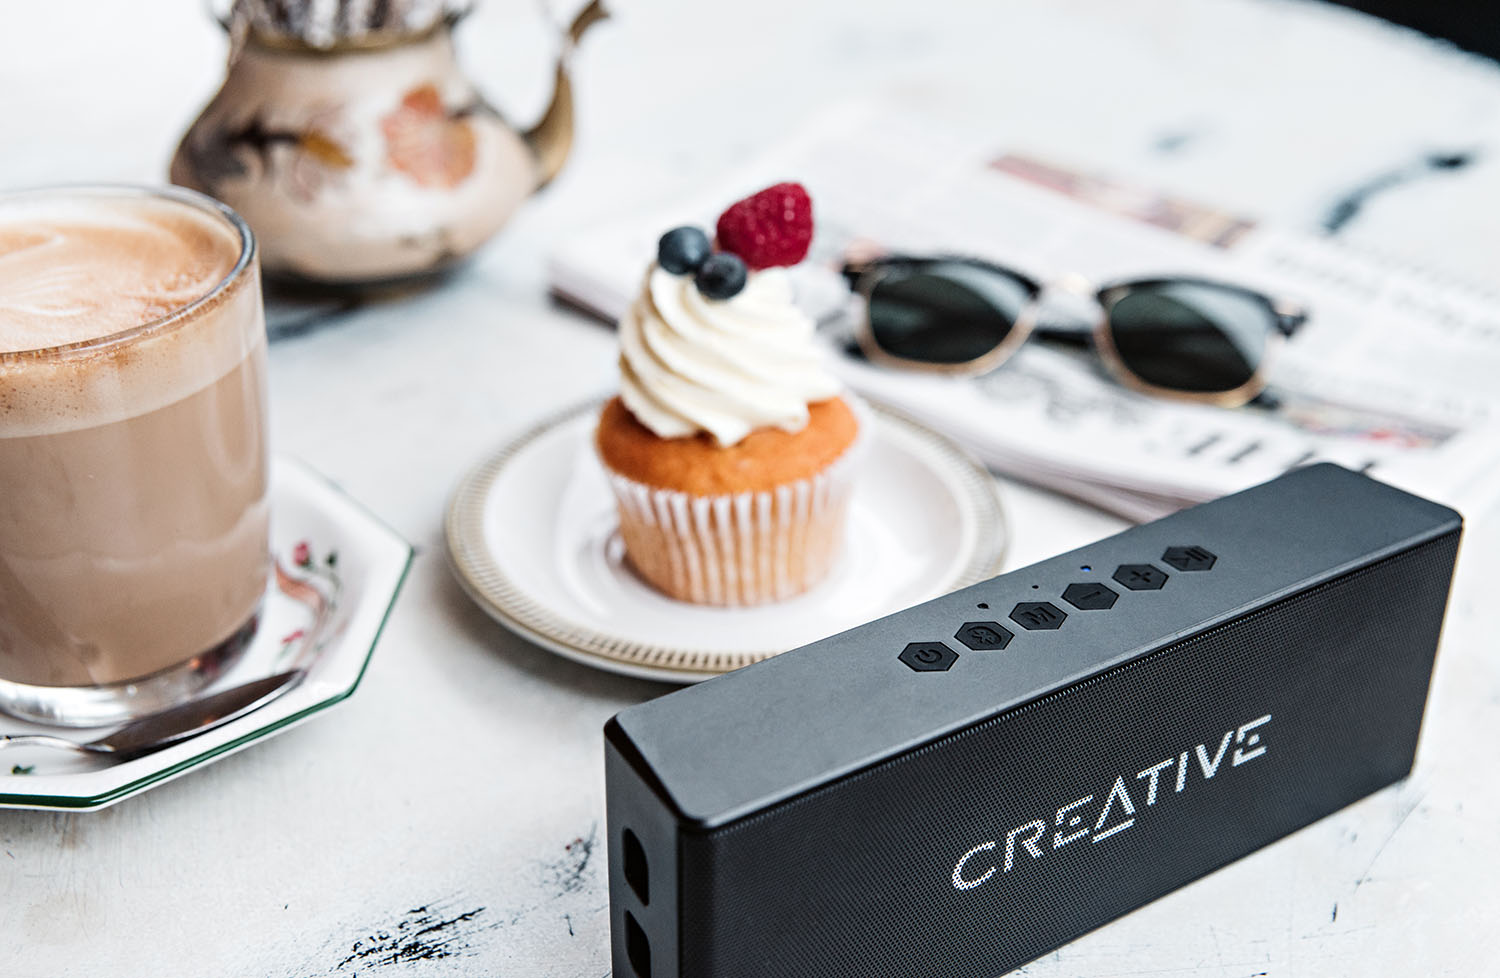 Creative MUVO 2 Bluetooth Speaker, Latte, Ray-Ban & Cupcake